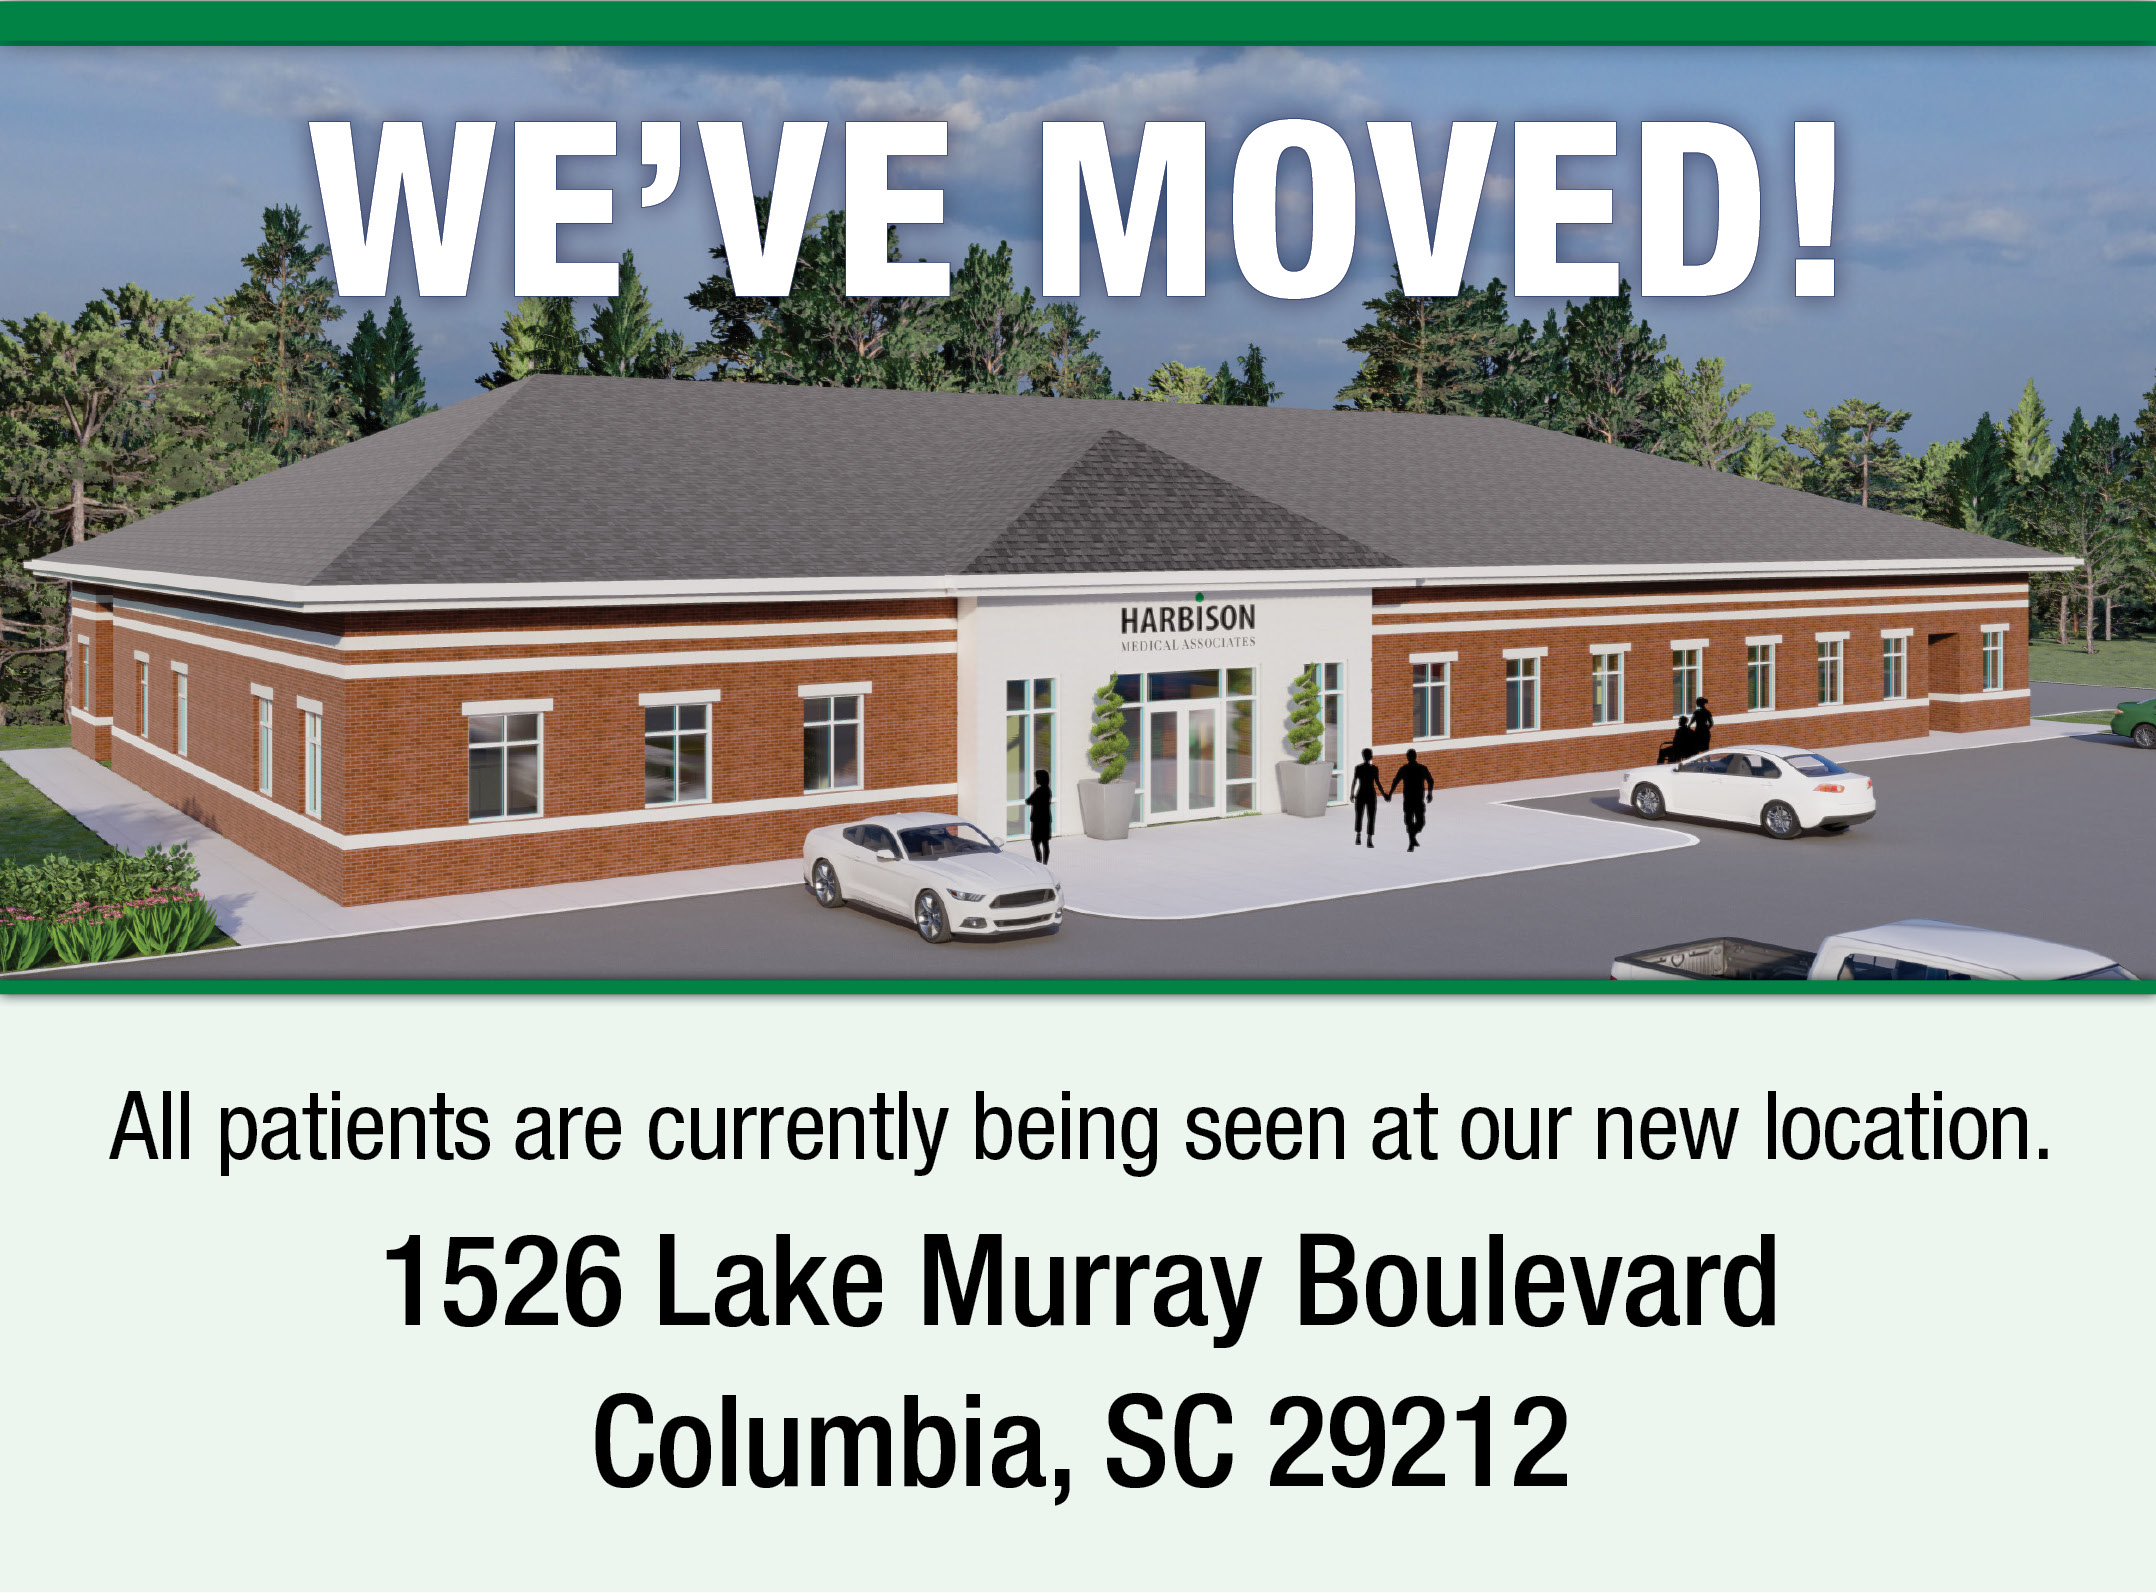 All patients are currently being seen at our new location at 1526 Lake Murray Boulevard, Columbia SC 29212.